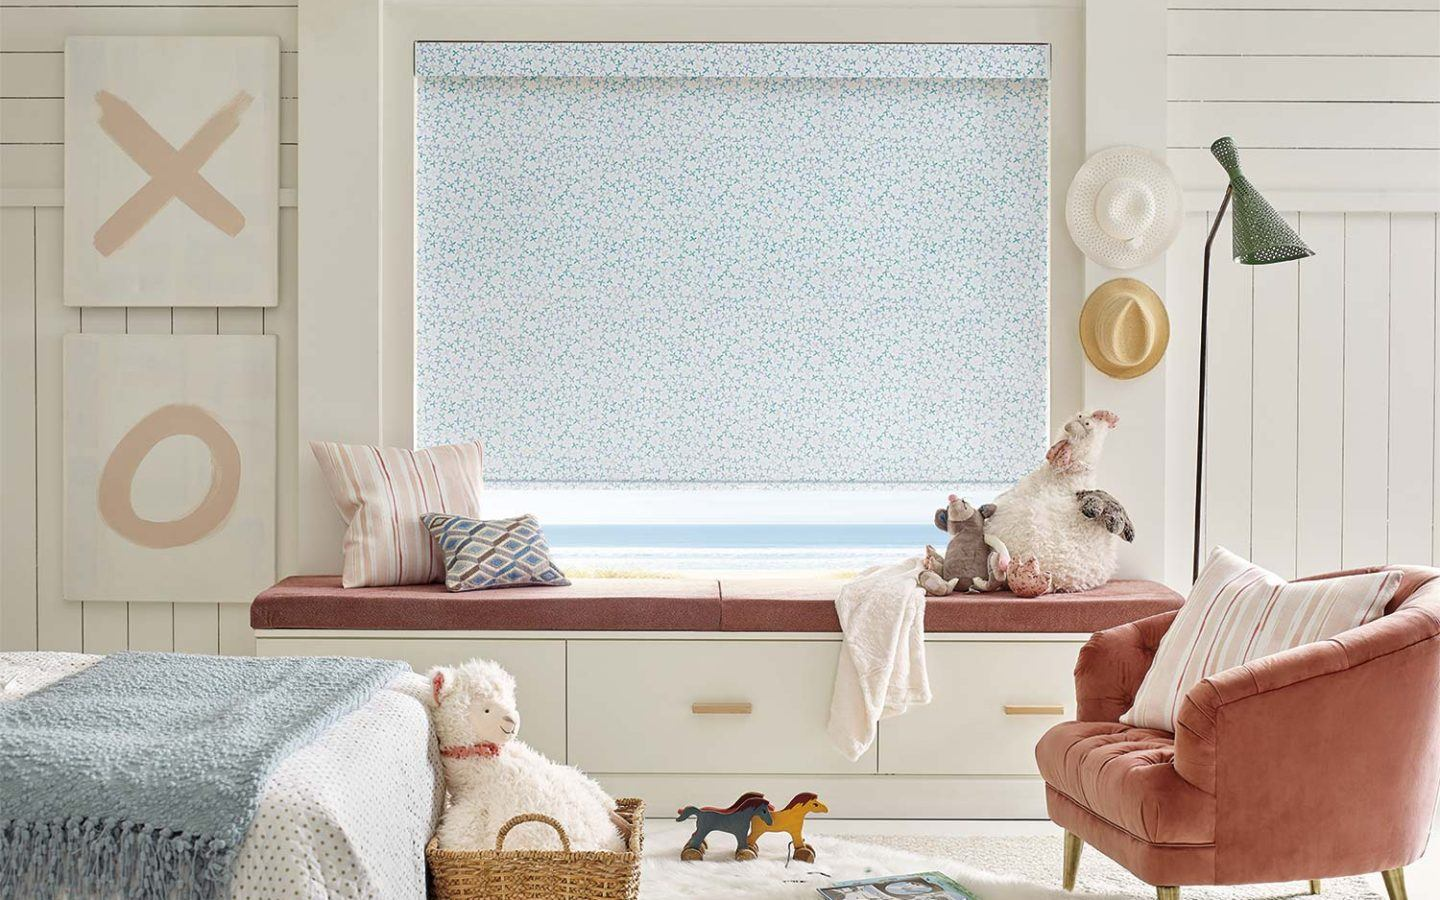 a child's bedroom with Hunter Douglas roller shade blinds covering the window